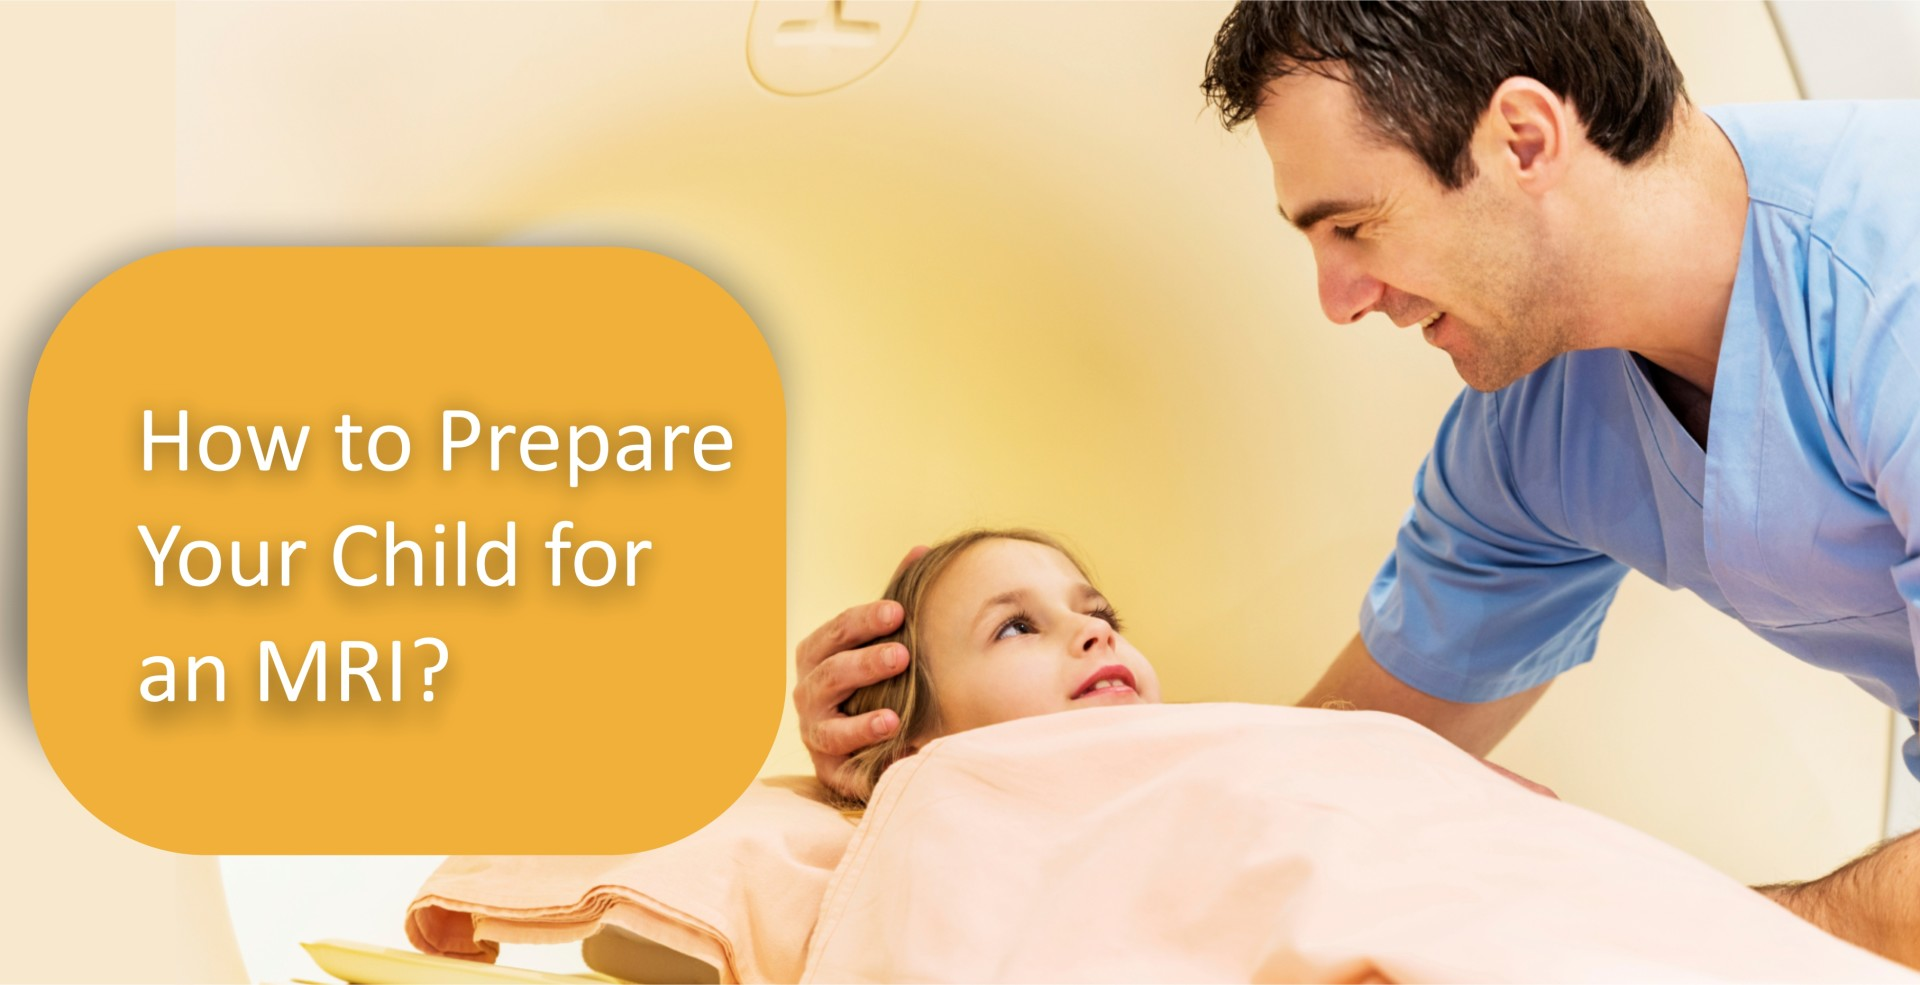 How to Prepare Your Child for an MRI